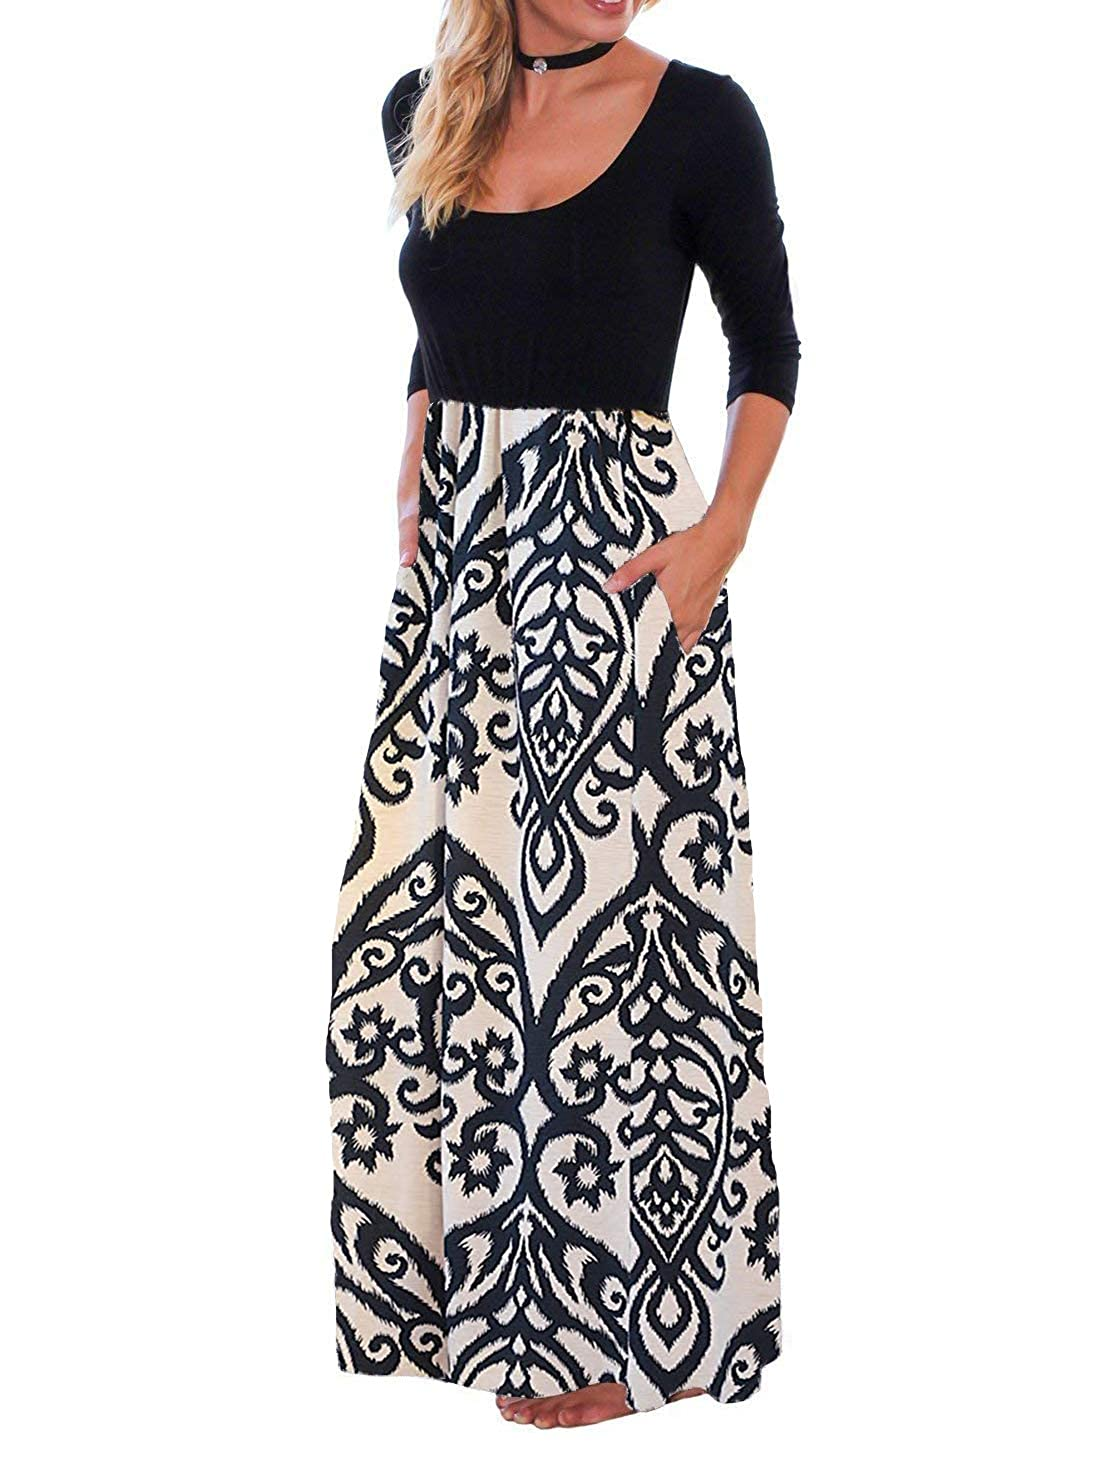 7797d7f2843 OURS Women s Casual 3 4 Sleeve Floral Print Dresses Ethnic Style Party Long  Maxi Dresses with Pockets at Amazon Women s Clothing store